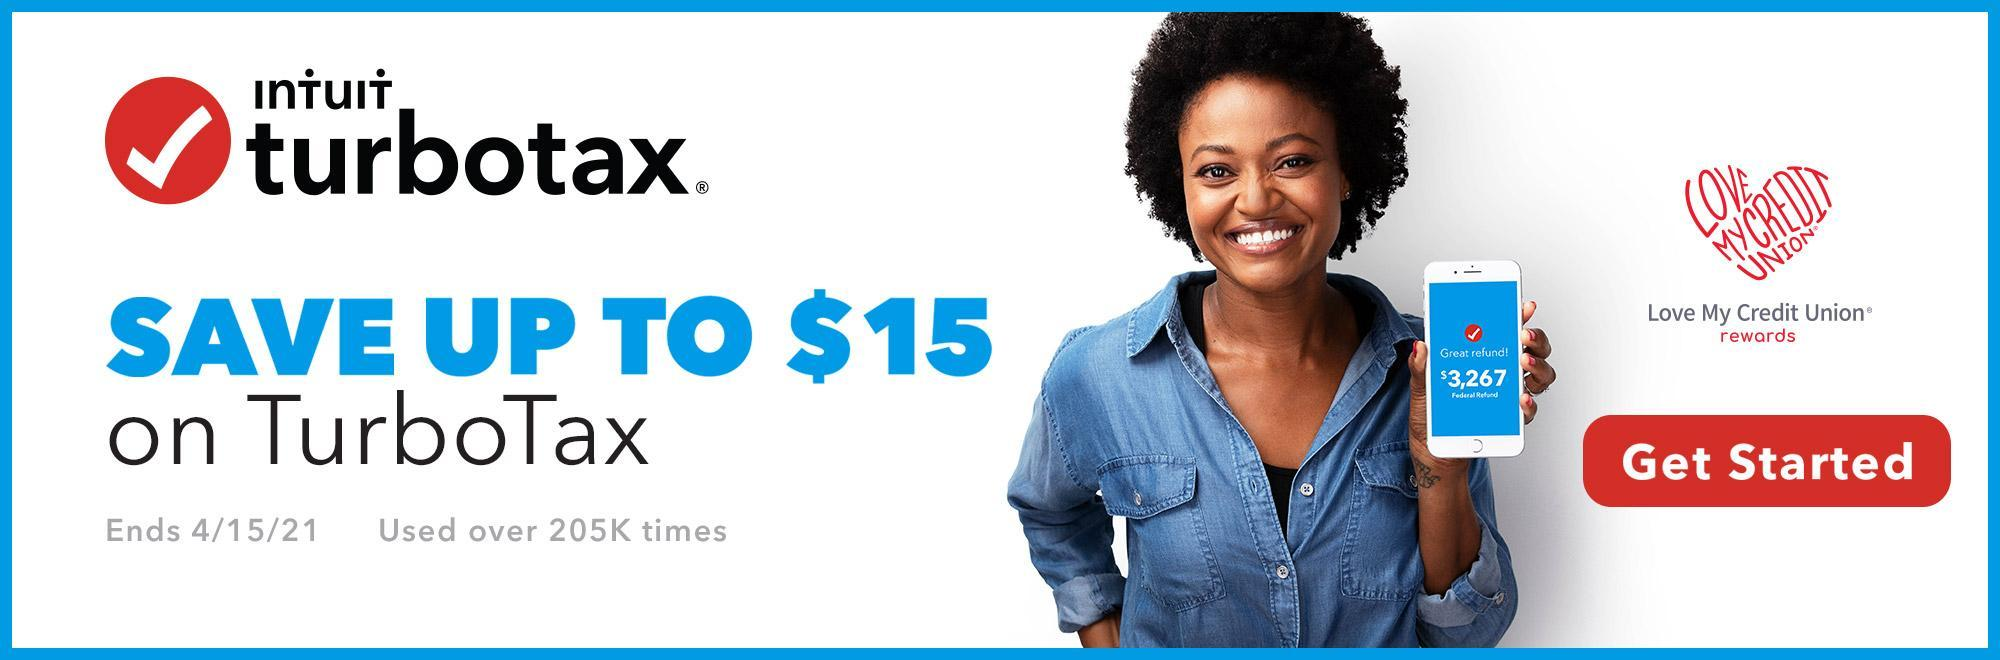 Save up to $15 on Intuit Turbotax with Love My Credit Union Rewards. Ends 4/15/21/